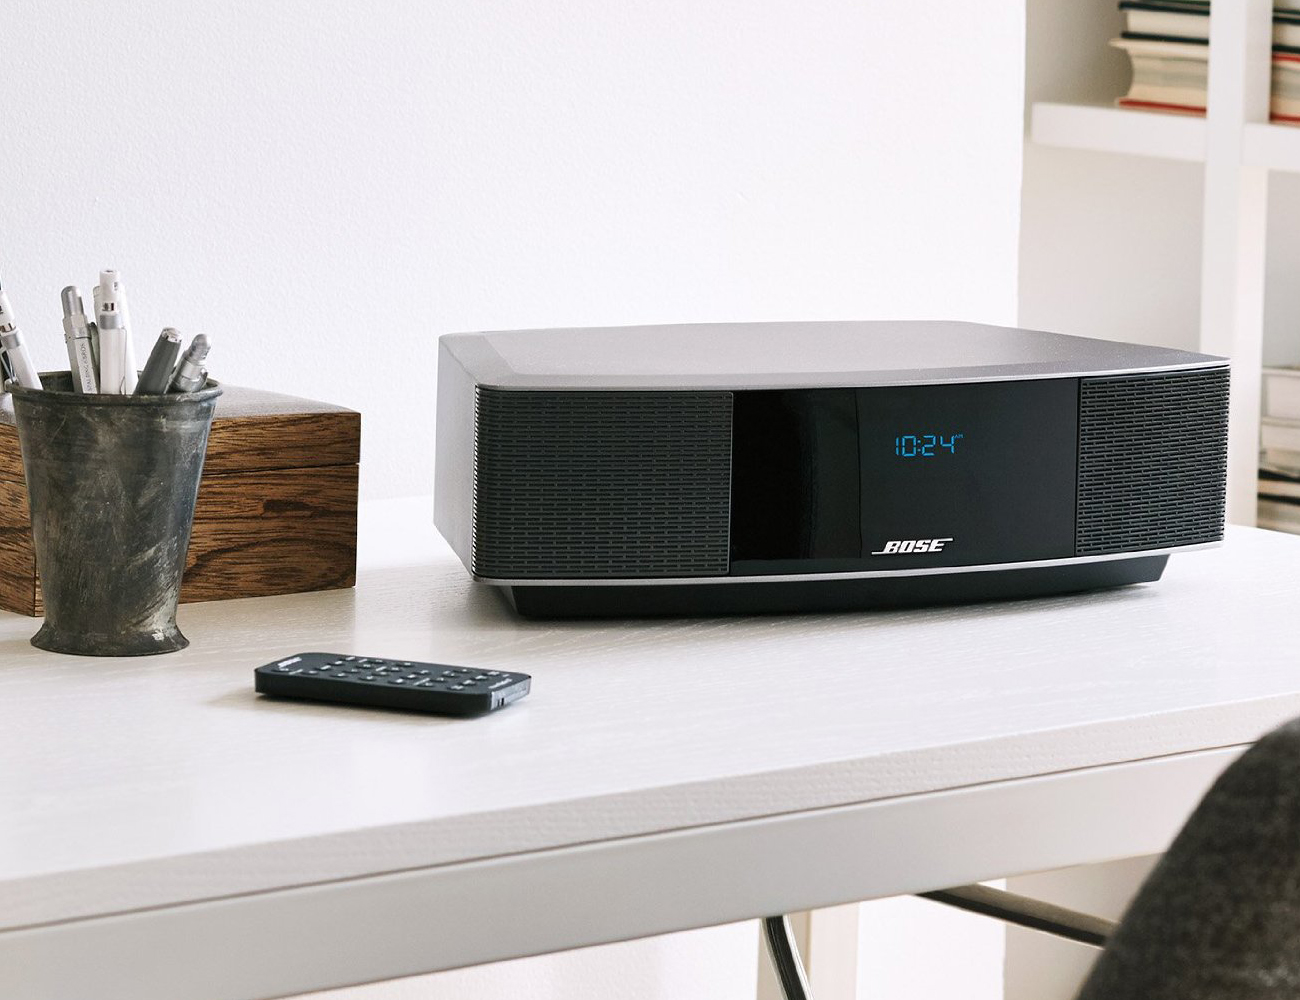 Bose Sound System >> Bose Wave Radio IV Review » The Gadget Flow